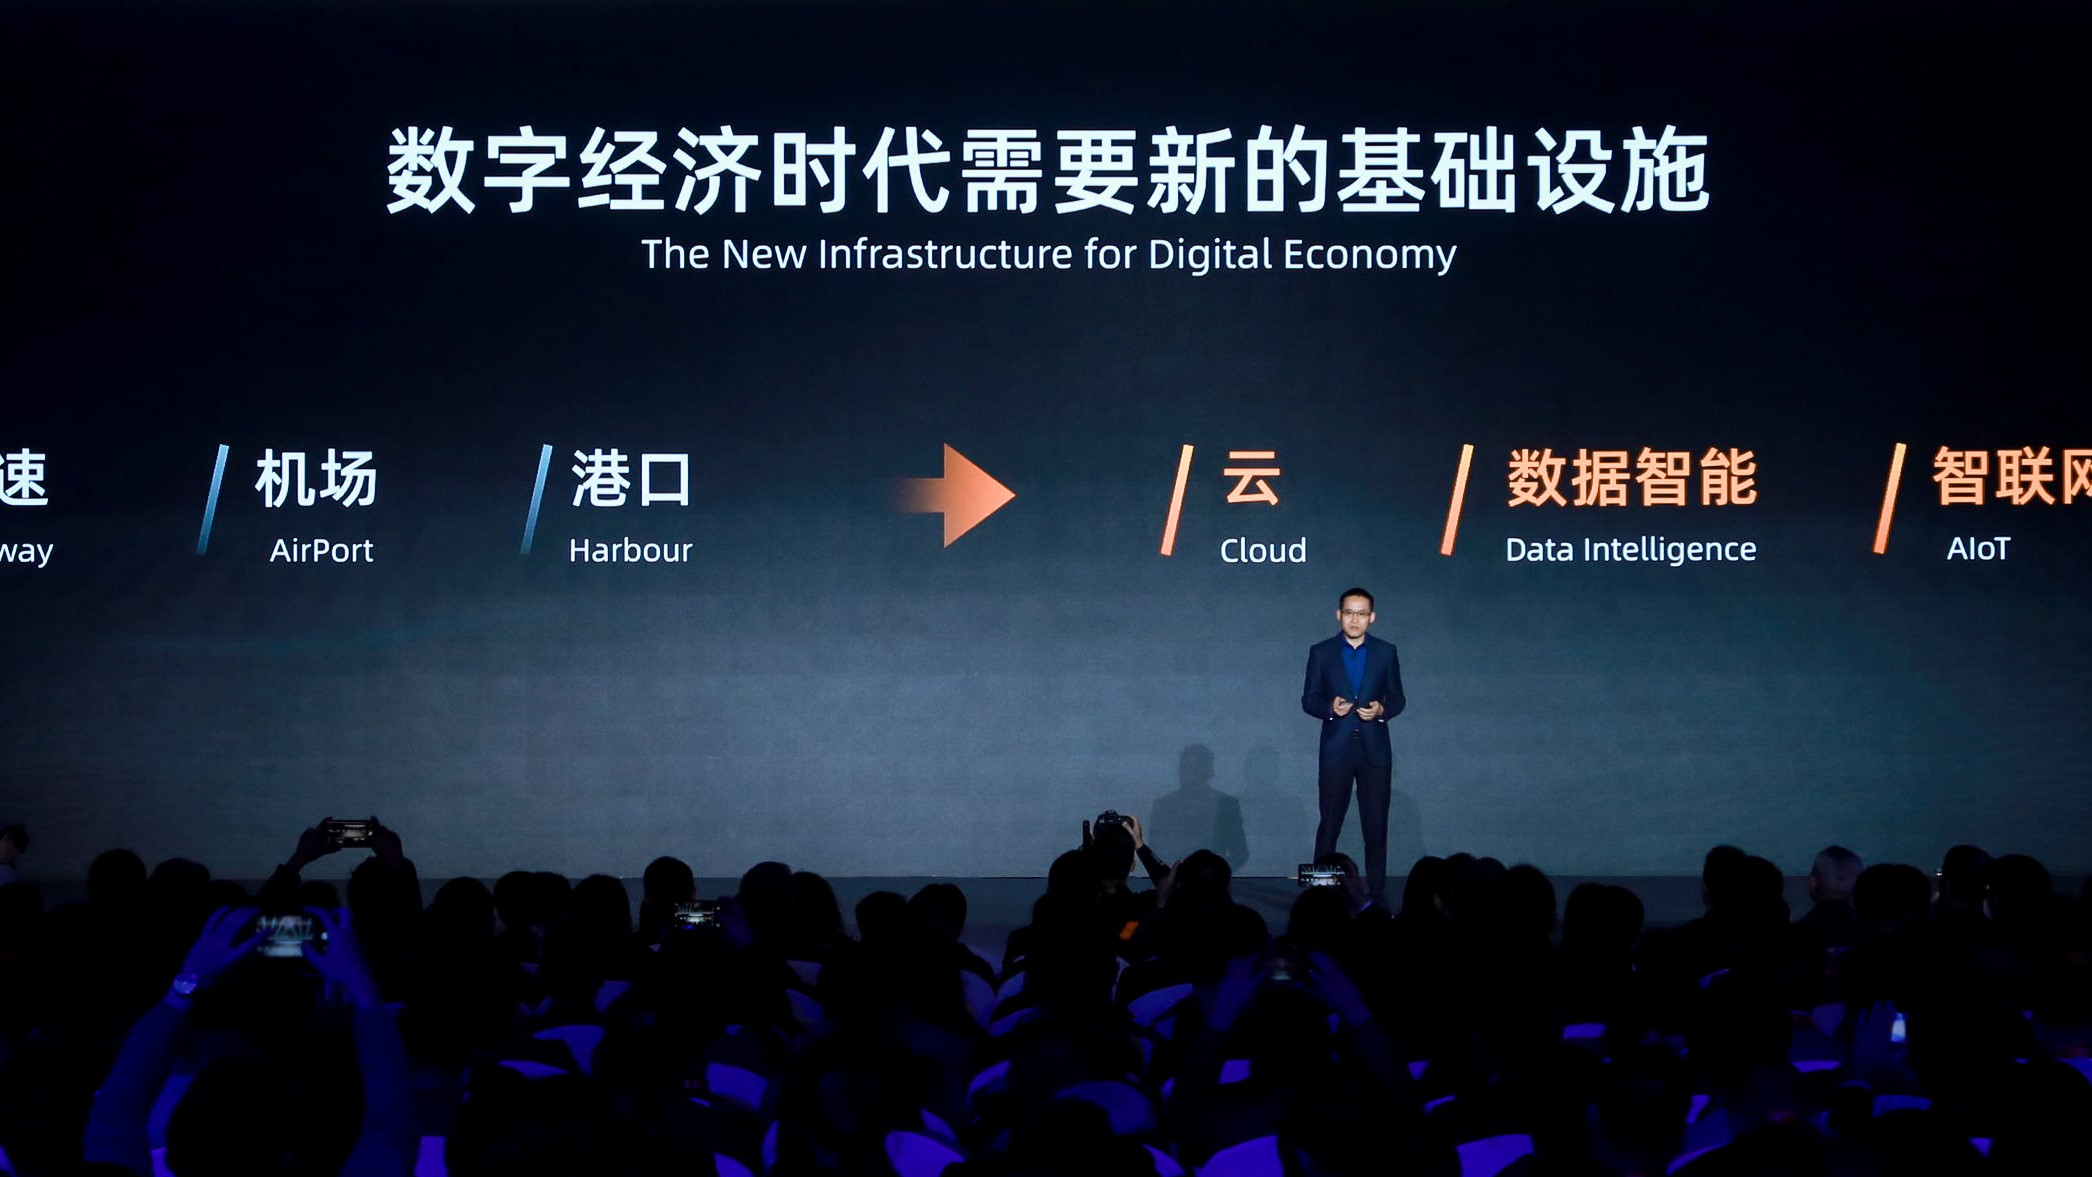 Alibaba News Roundup Alibaba Cloud Gets A Sky High Boost Alizila Com Search quotes, news & videos. alibaba news roundup alibaba cloud gets a sky high boost alizila com